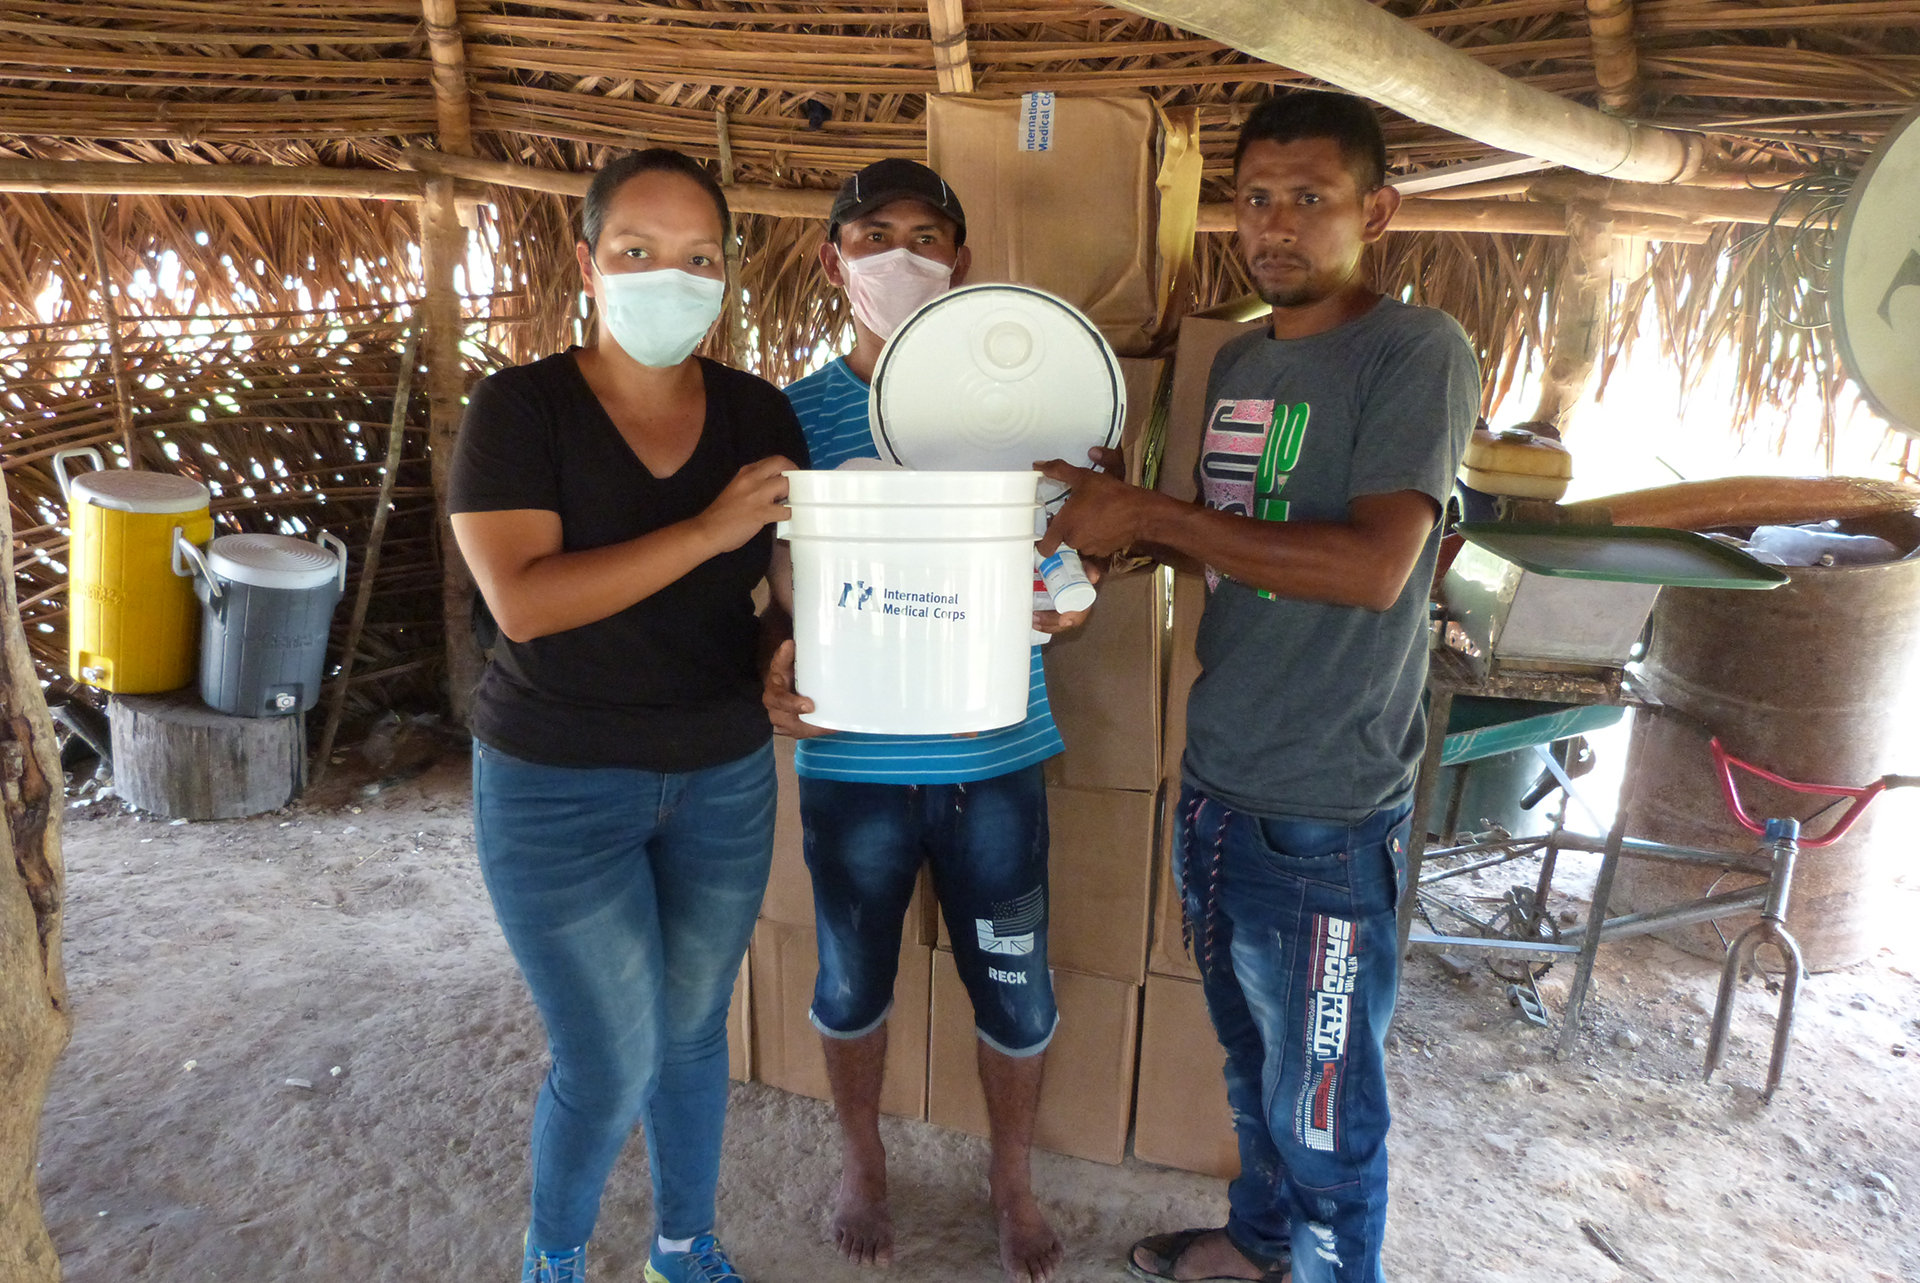 Medical mobile outreach activity completed under an LDS grant in the Bolivar state, Venezuela.